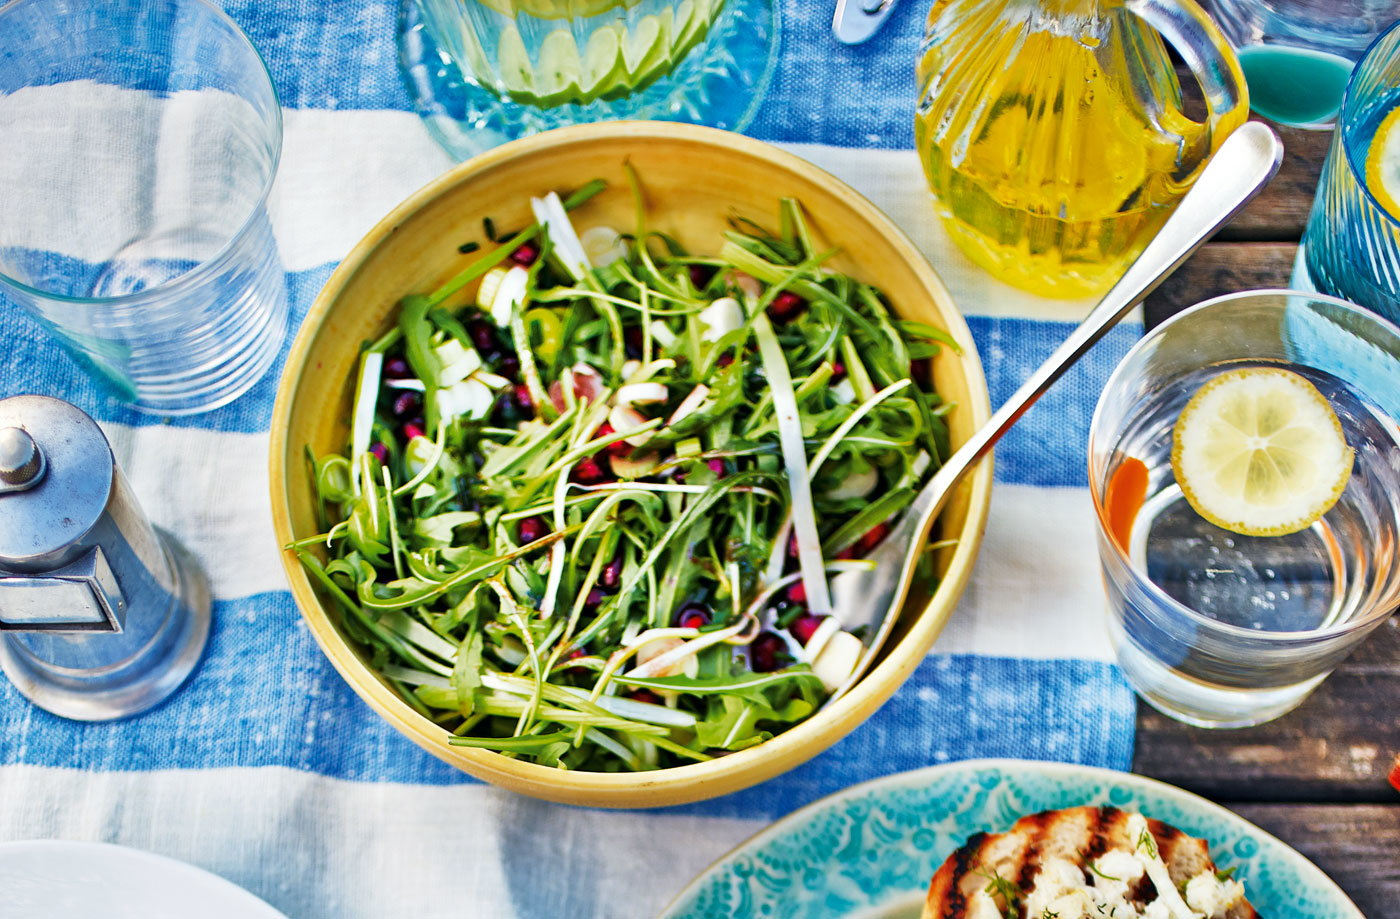 Rocket salad with pomegranate